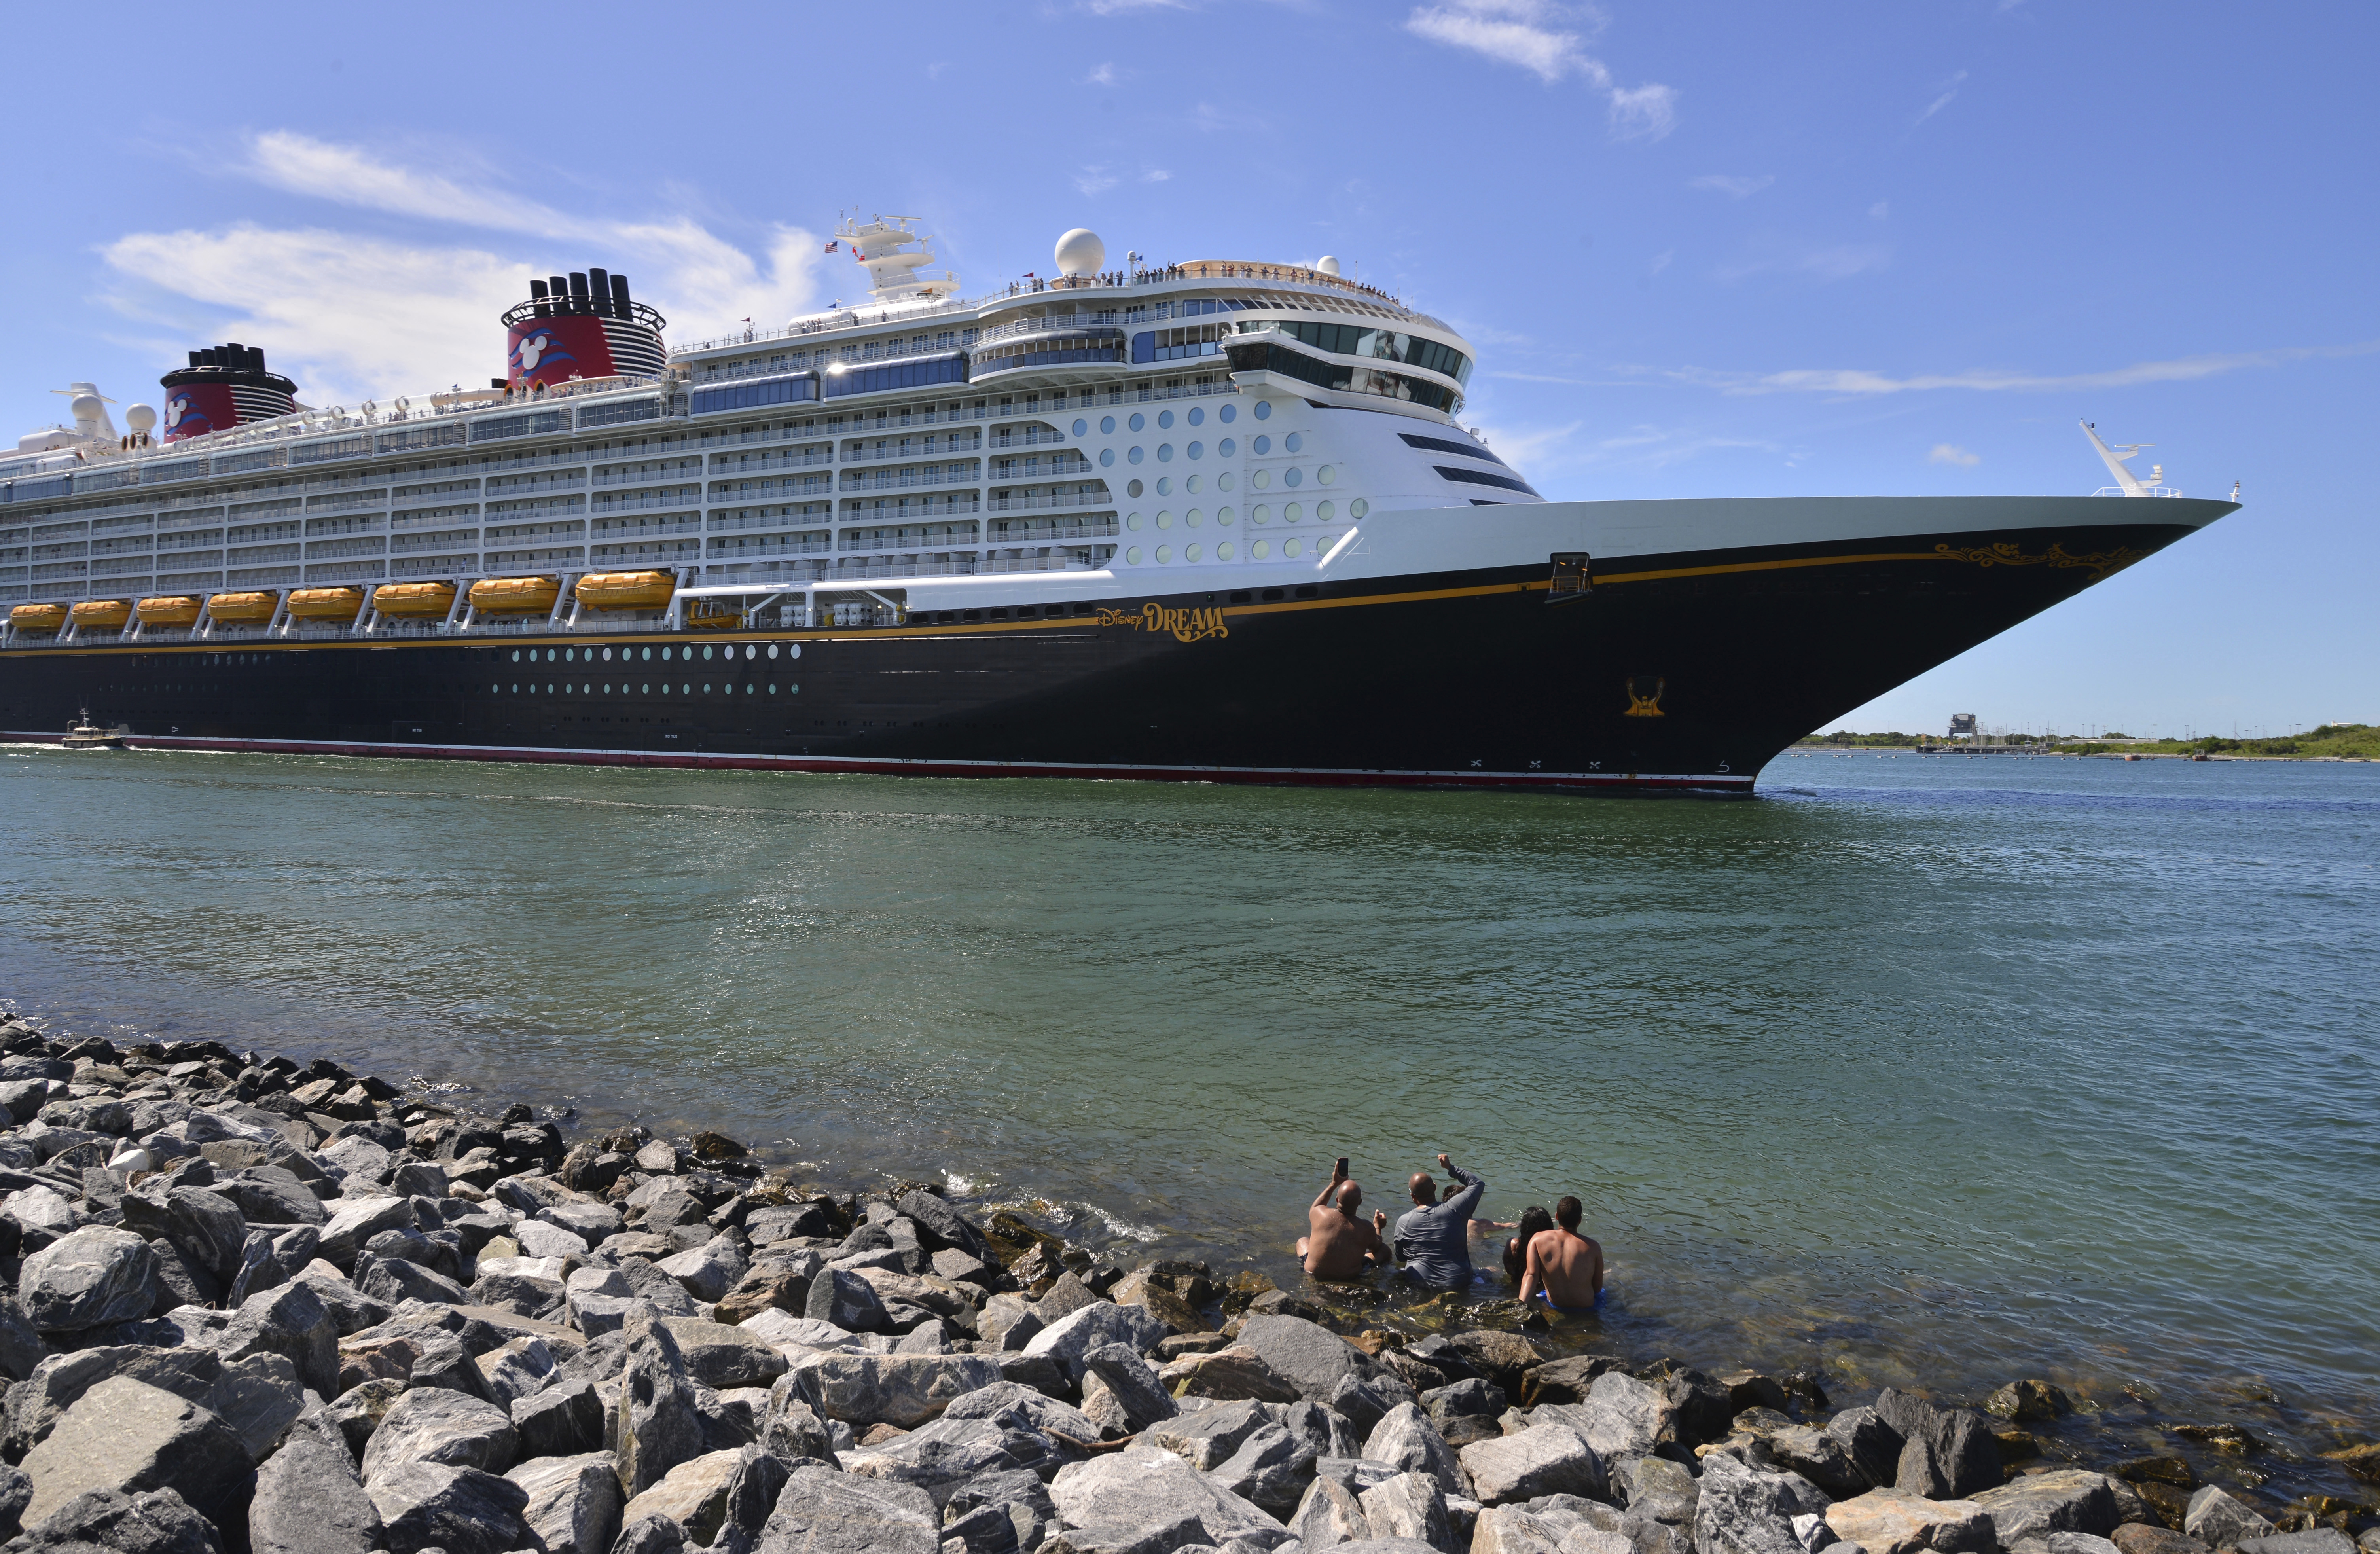 The Disney Dream sails out of Port Canaveral, Fla. on July 17, 2021.